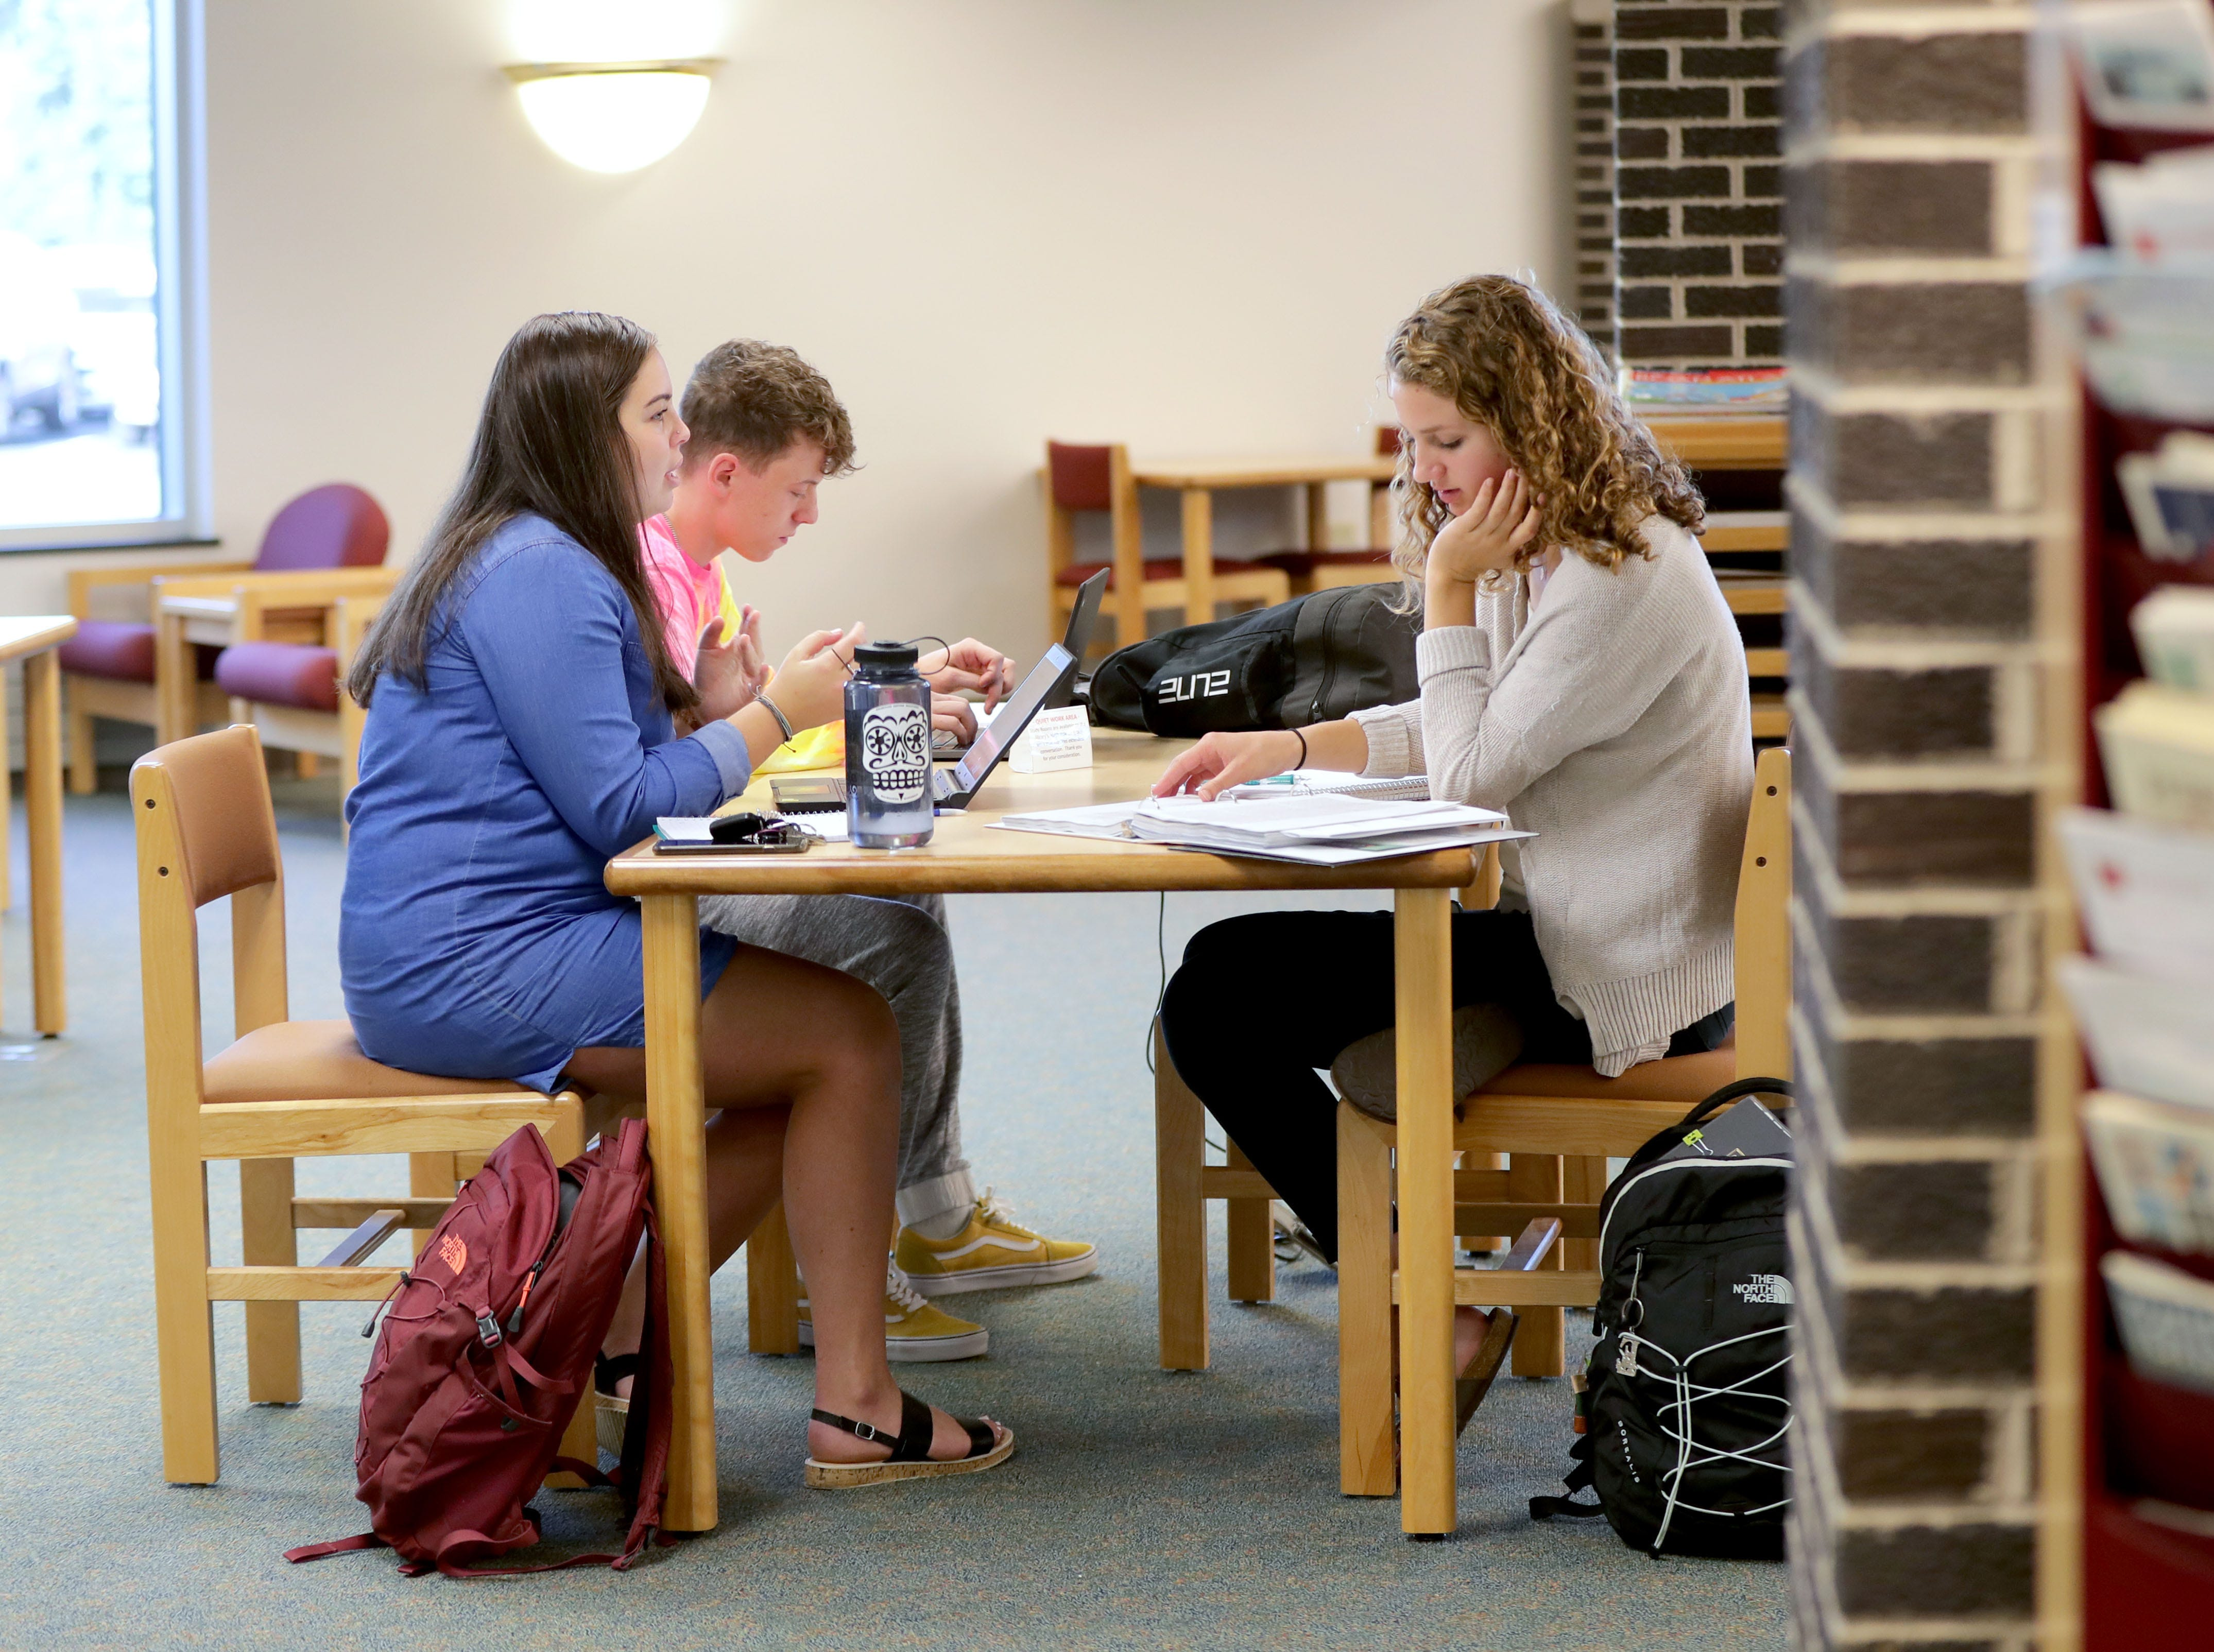 Madison Vogel (front left), a University of Wisconsin-Green Bay, Sheboygan Campus freshman from Kiel, Emma Egbert (right), a senior at Sheboygan Lutheran High School taking a college class, and Justin Landgraf, a University of Wisconsin-Green Bay, Sheboygan Campus junior from Sheboygan, work on a project for their introduction to psychology class.